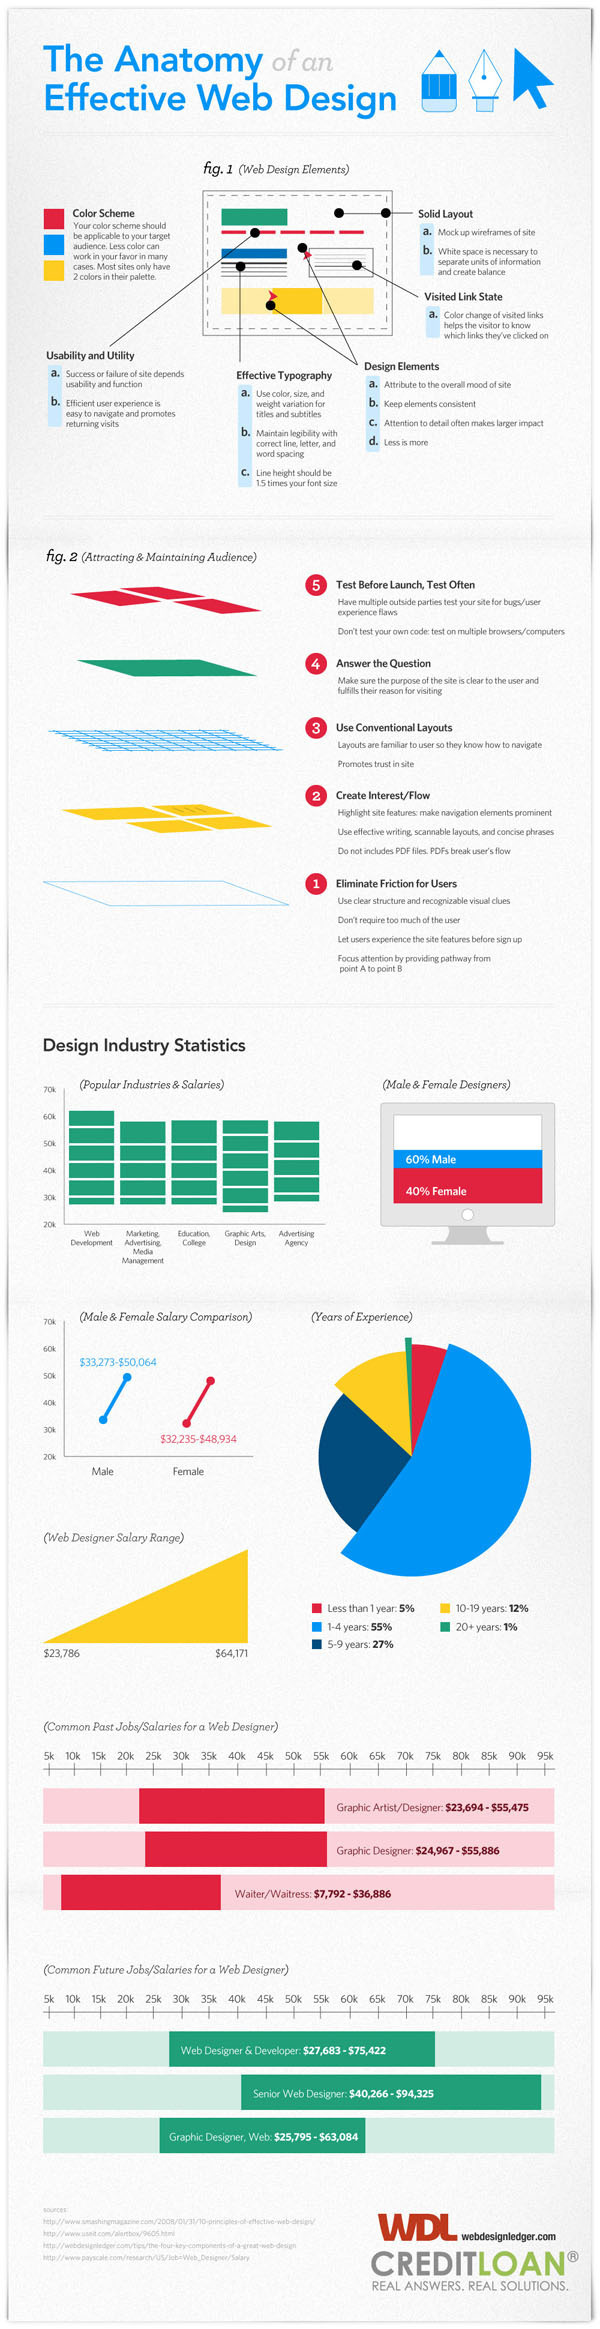 The Anatomy of an Effective Web Design [Infographic] #infographic #design #web